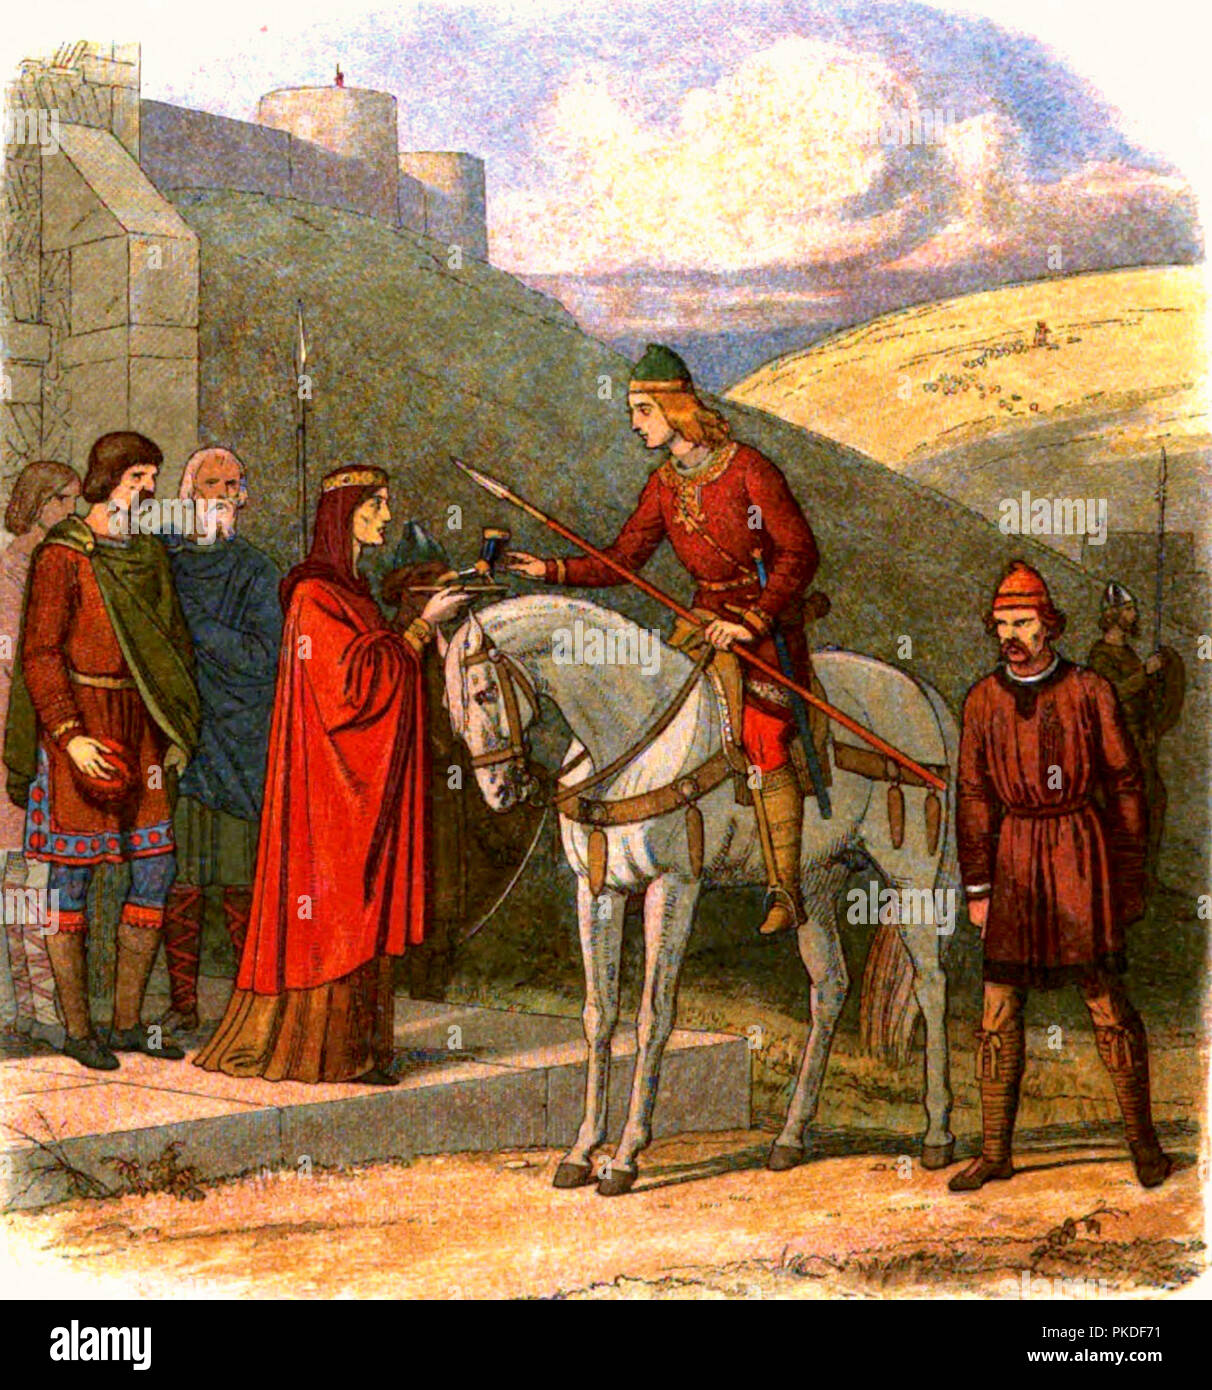 Edward the Martyr is offered a cup of mead by Ælfthryth, widow of the late Edgar, unaware that her attendant is about to murder him. Edward the Martyr (962 – 978) King of England from 975 until he was murdered in 978. Illustration by James William Edmund Doyle - Stock Image